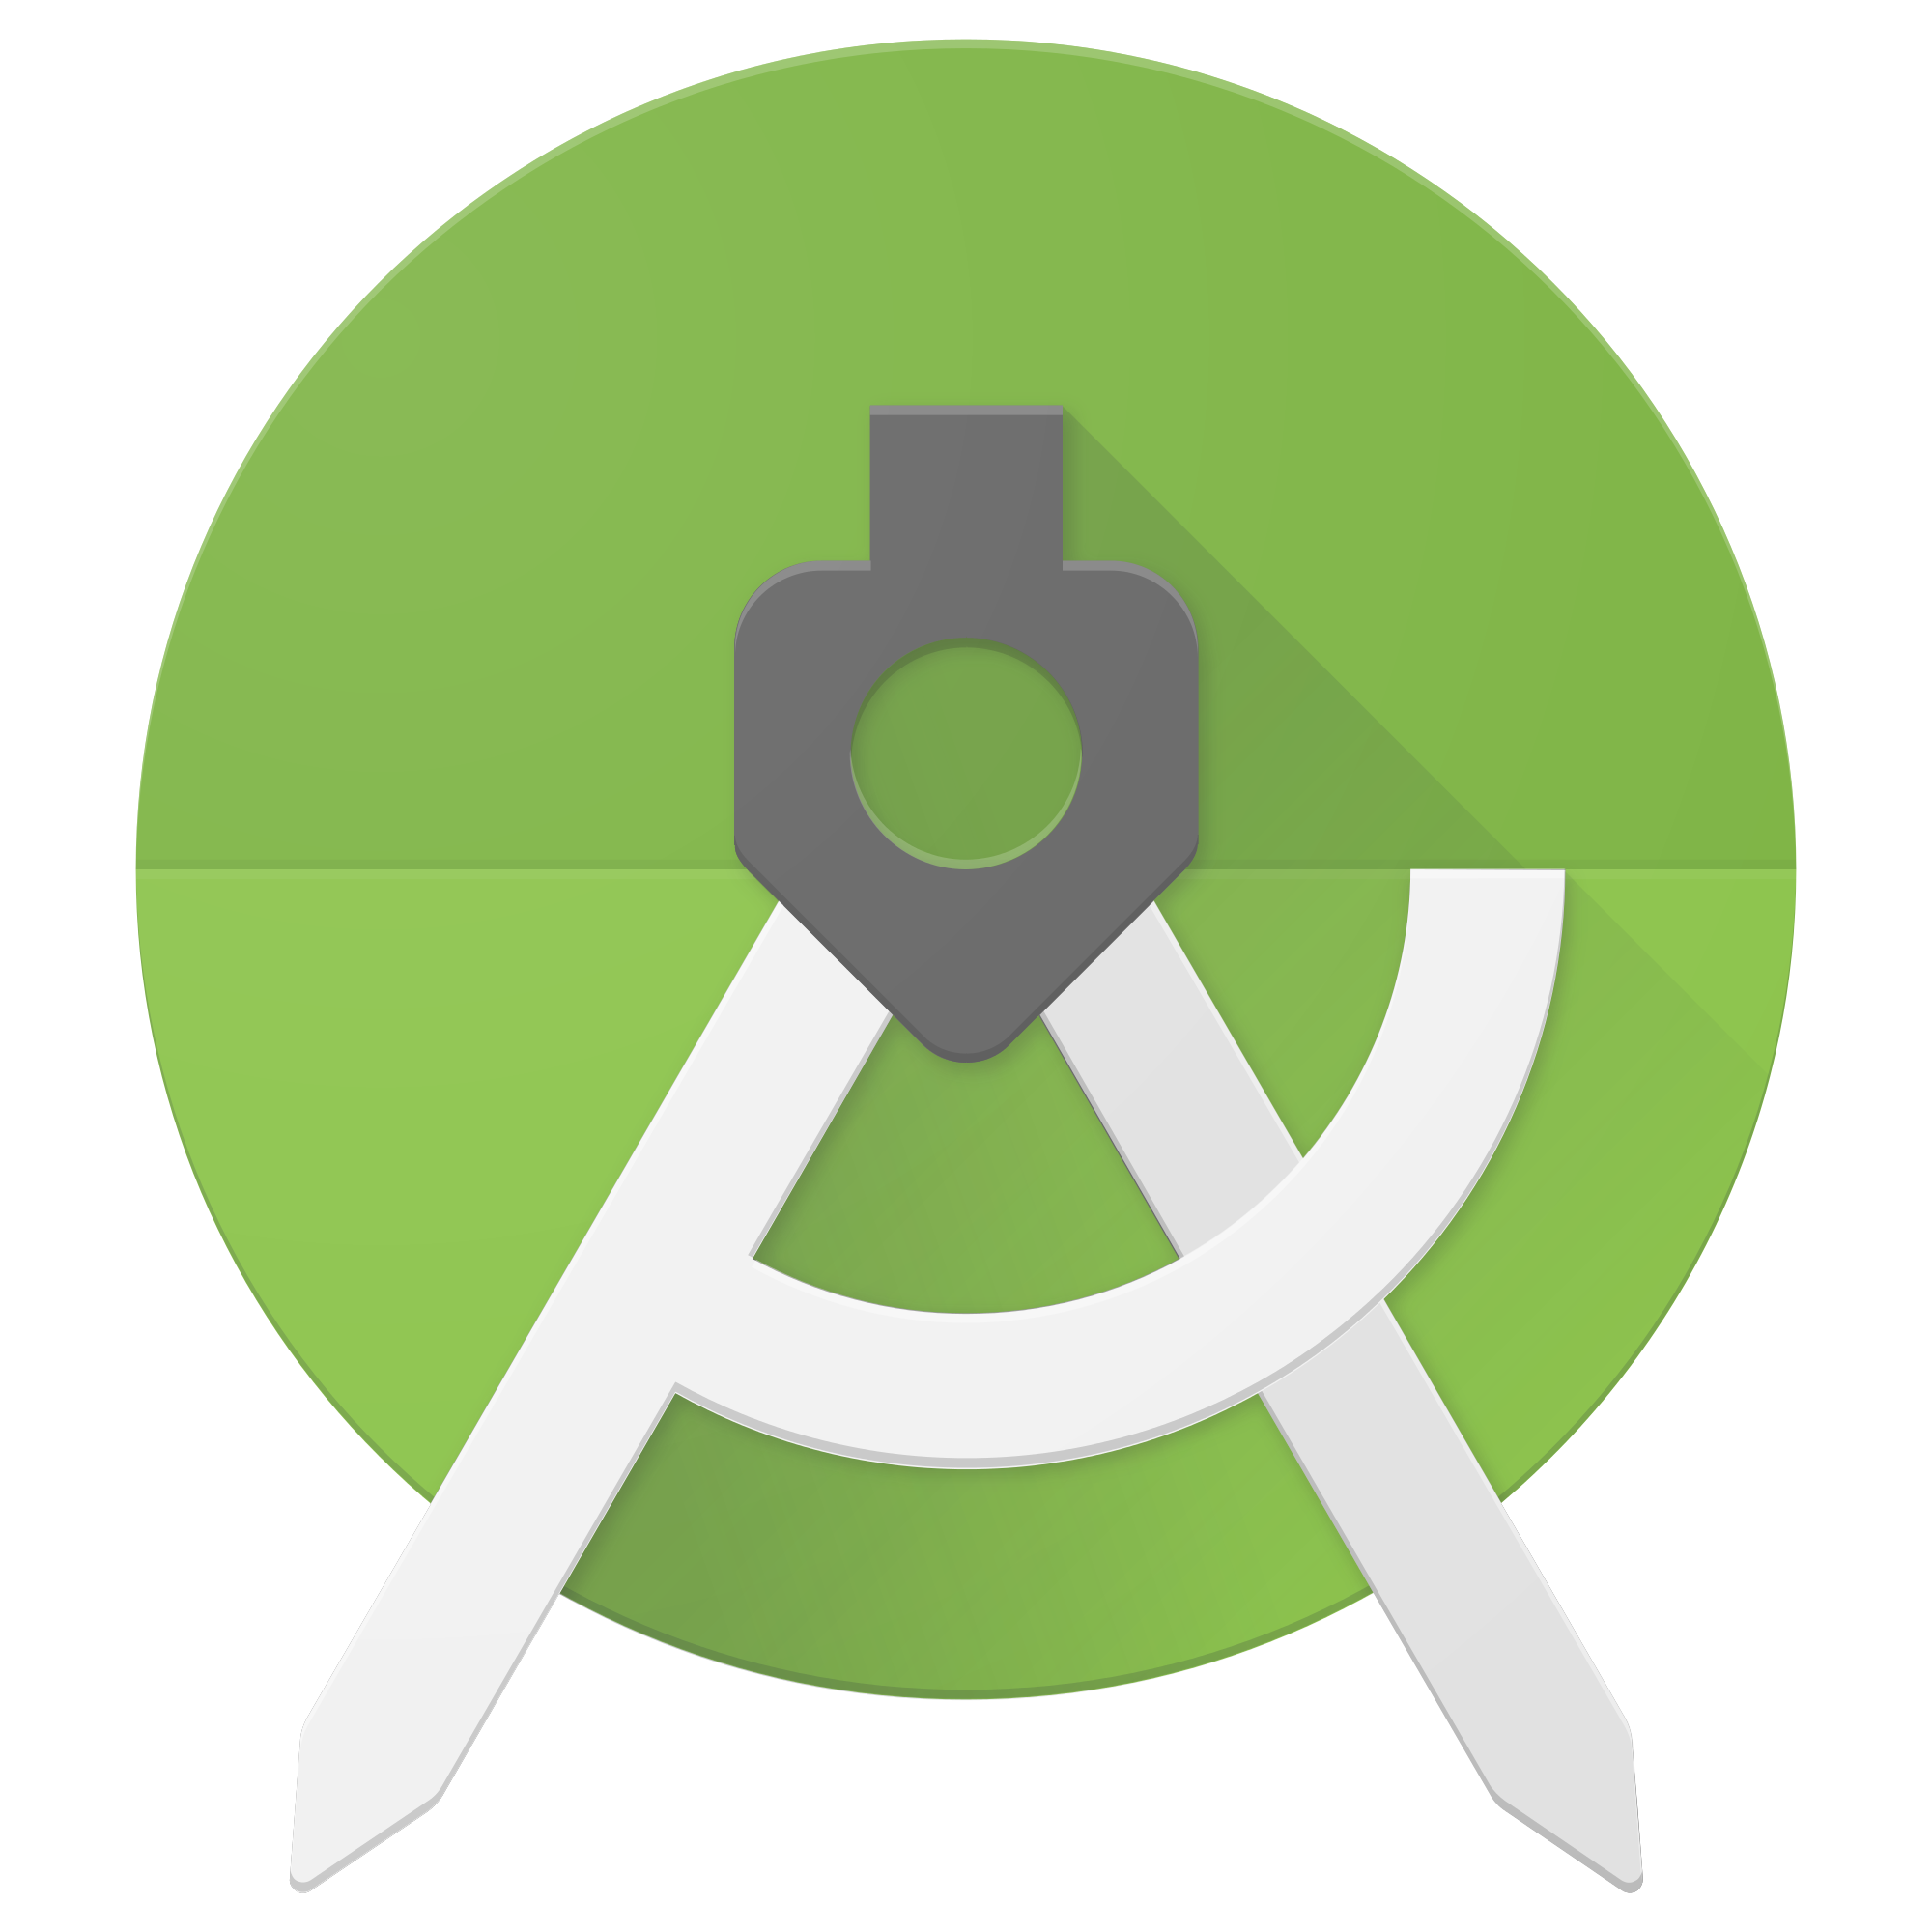 Android studio png. File icon svg wikimedia